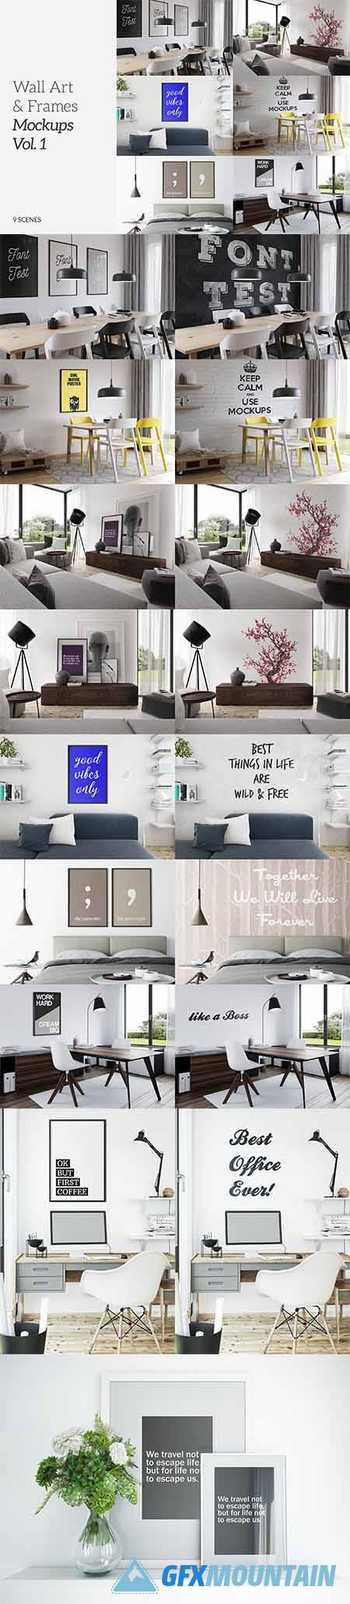 Wall Art & Frames Mockups Vol.1 5981903